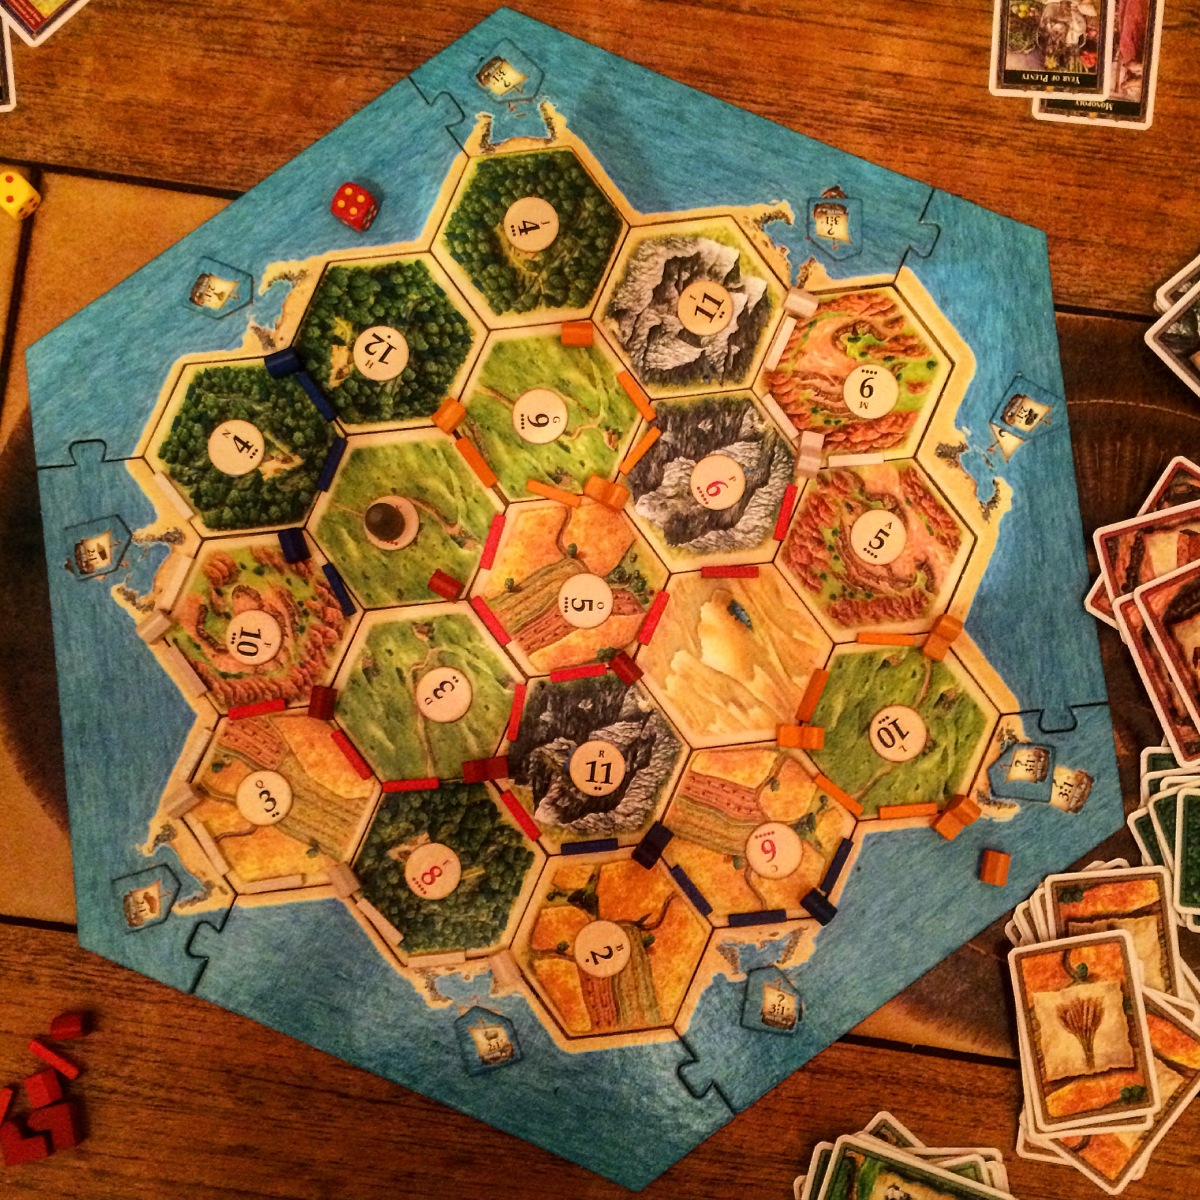 5 Negotiation Tips From Settlers of Catan